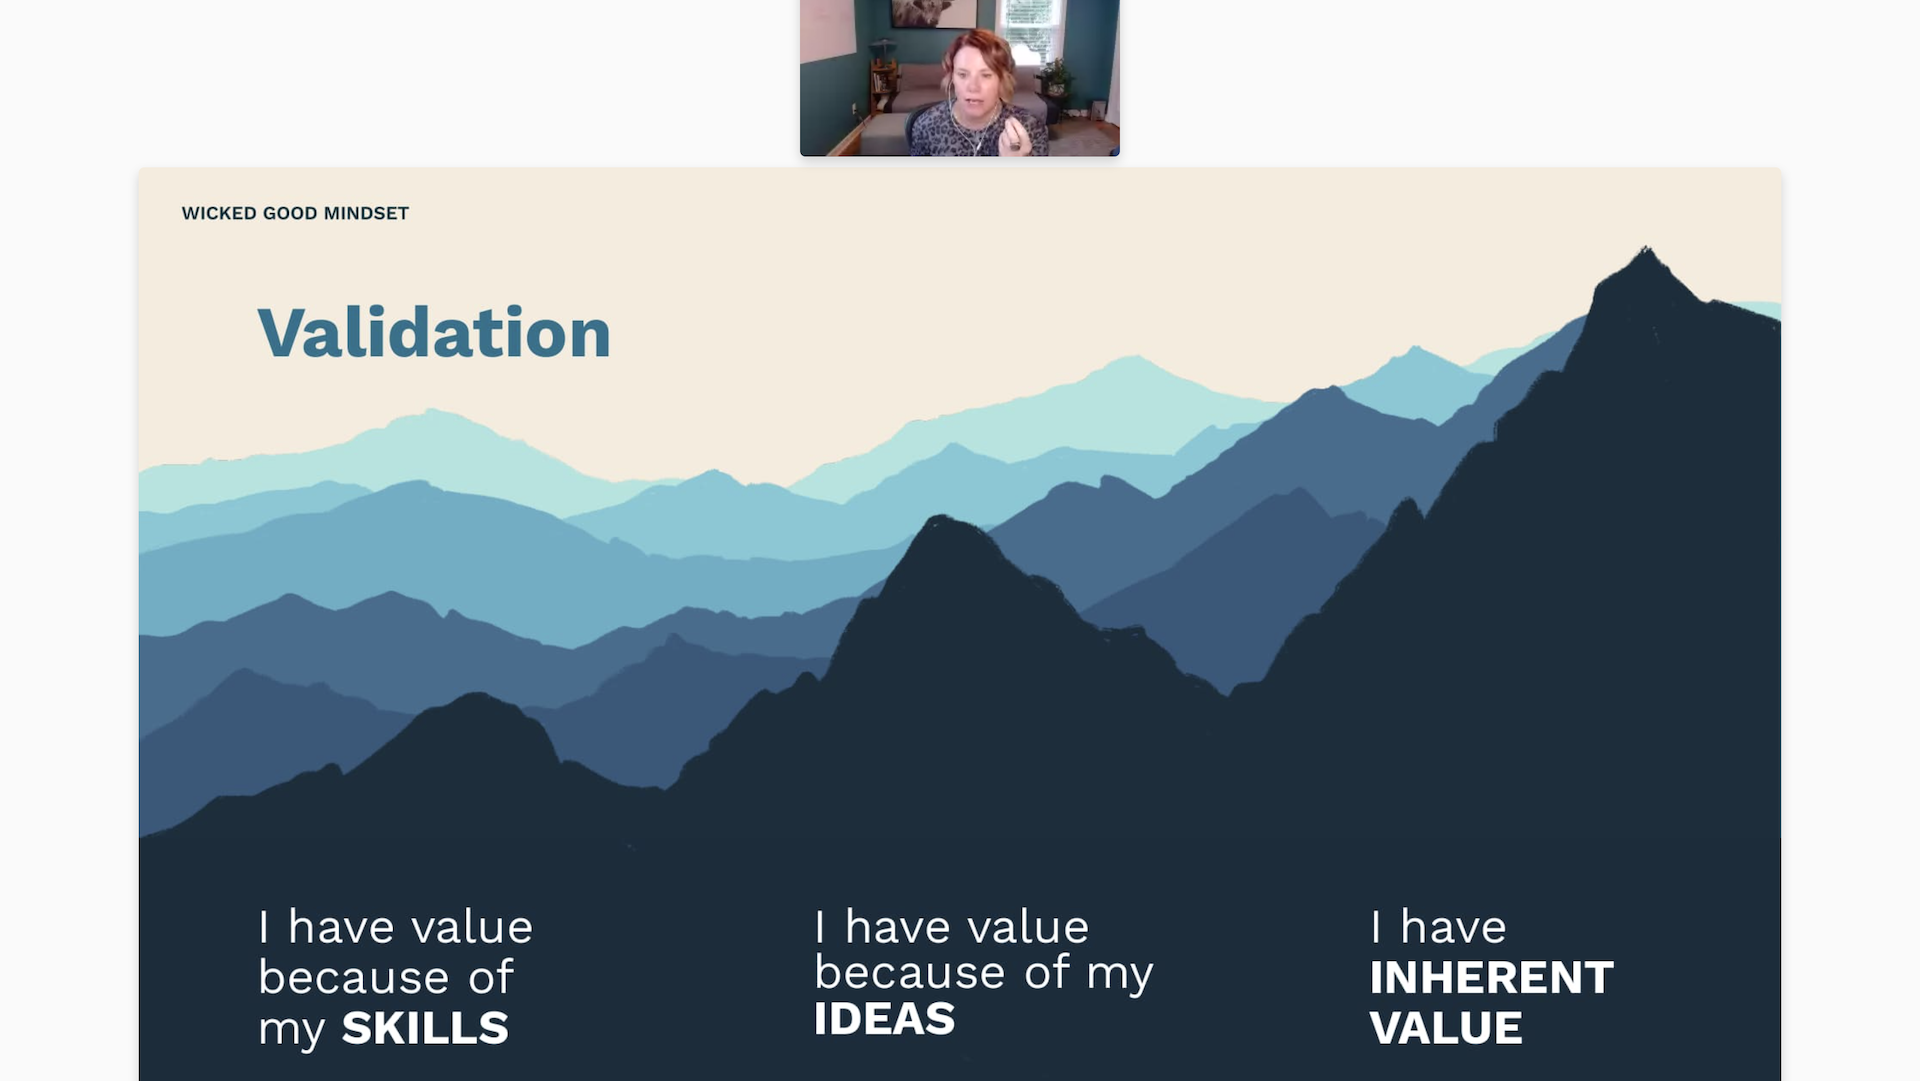 Karen VanHouten appears on video above a slide with the outline of a mountain range. Text: Validation. I have value because of my skills. I have value because of my ideas. I have inherent value.